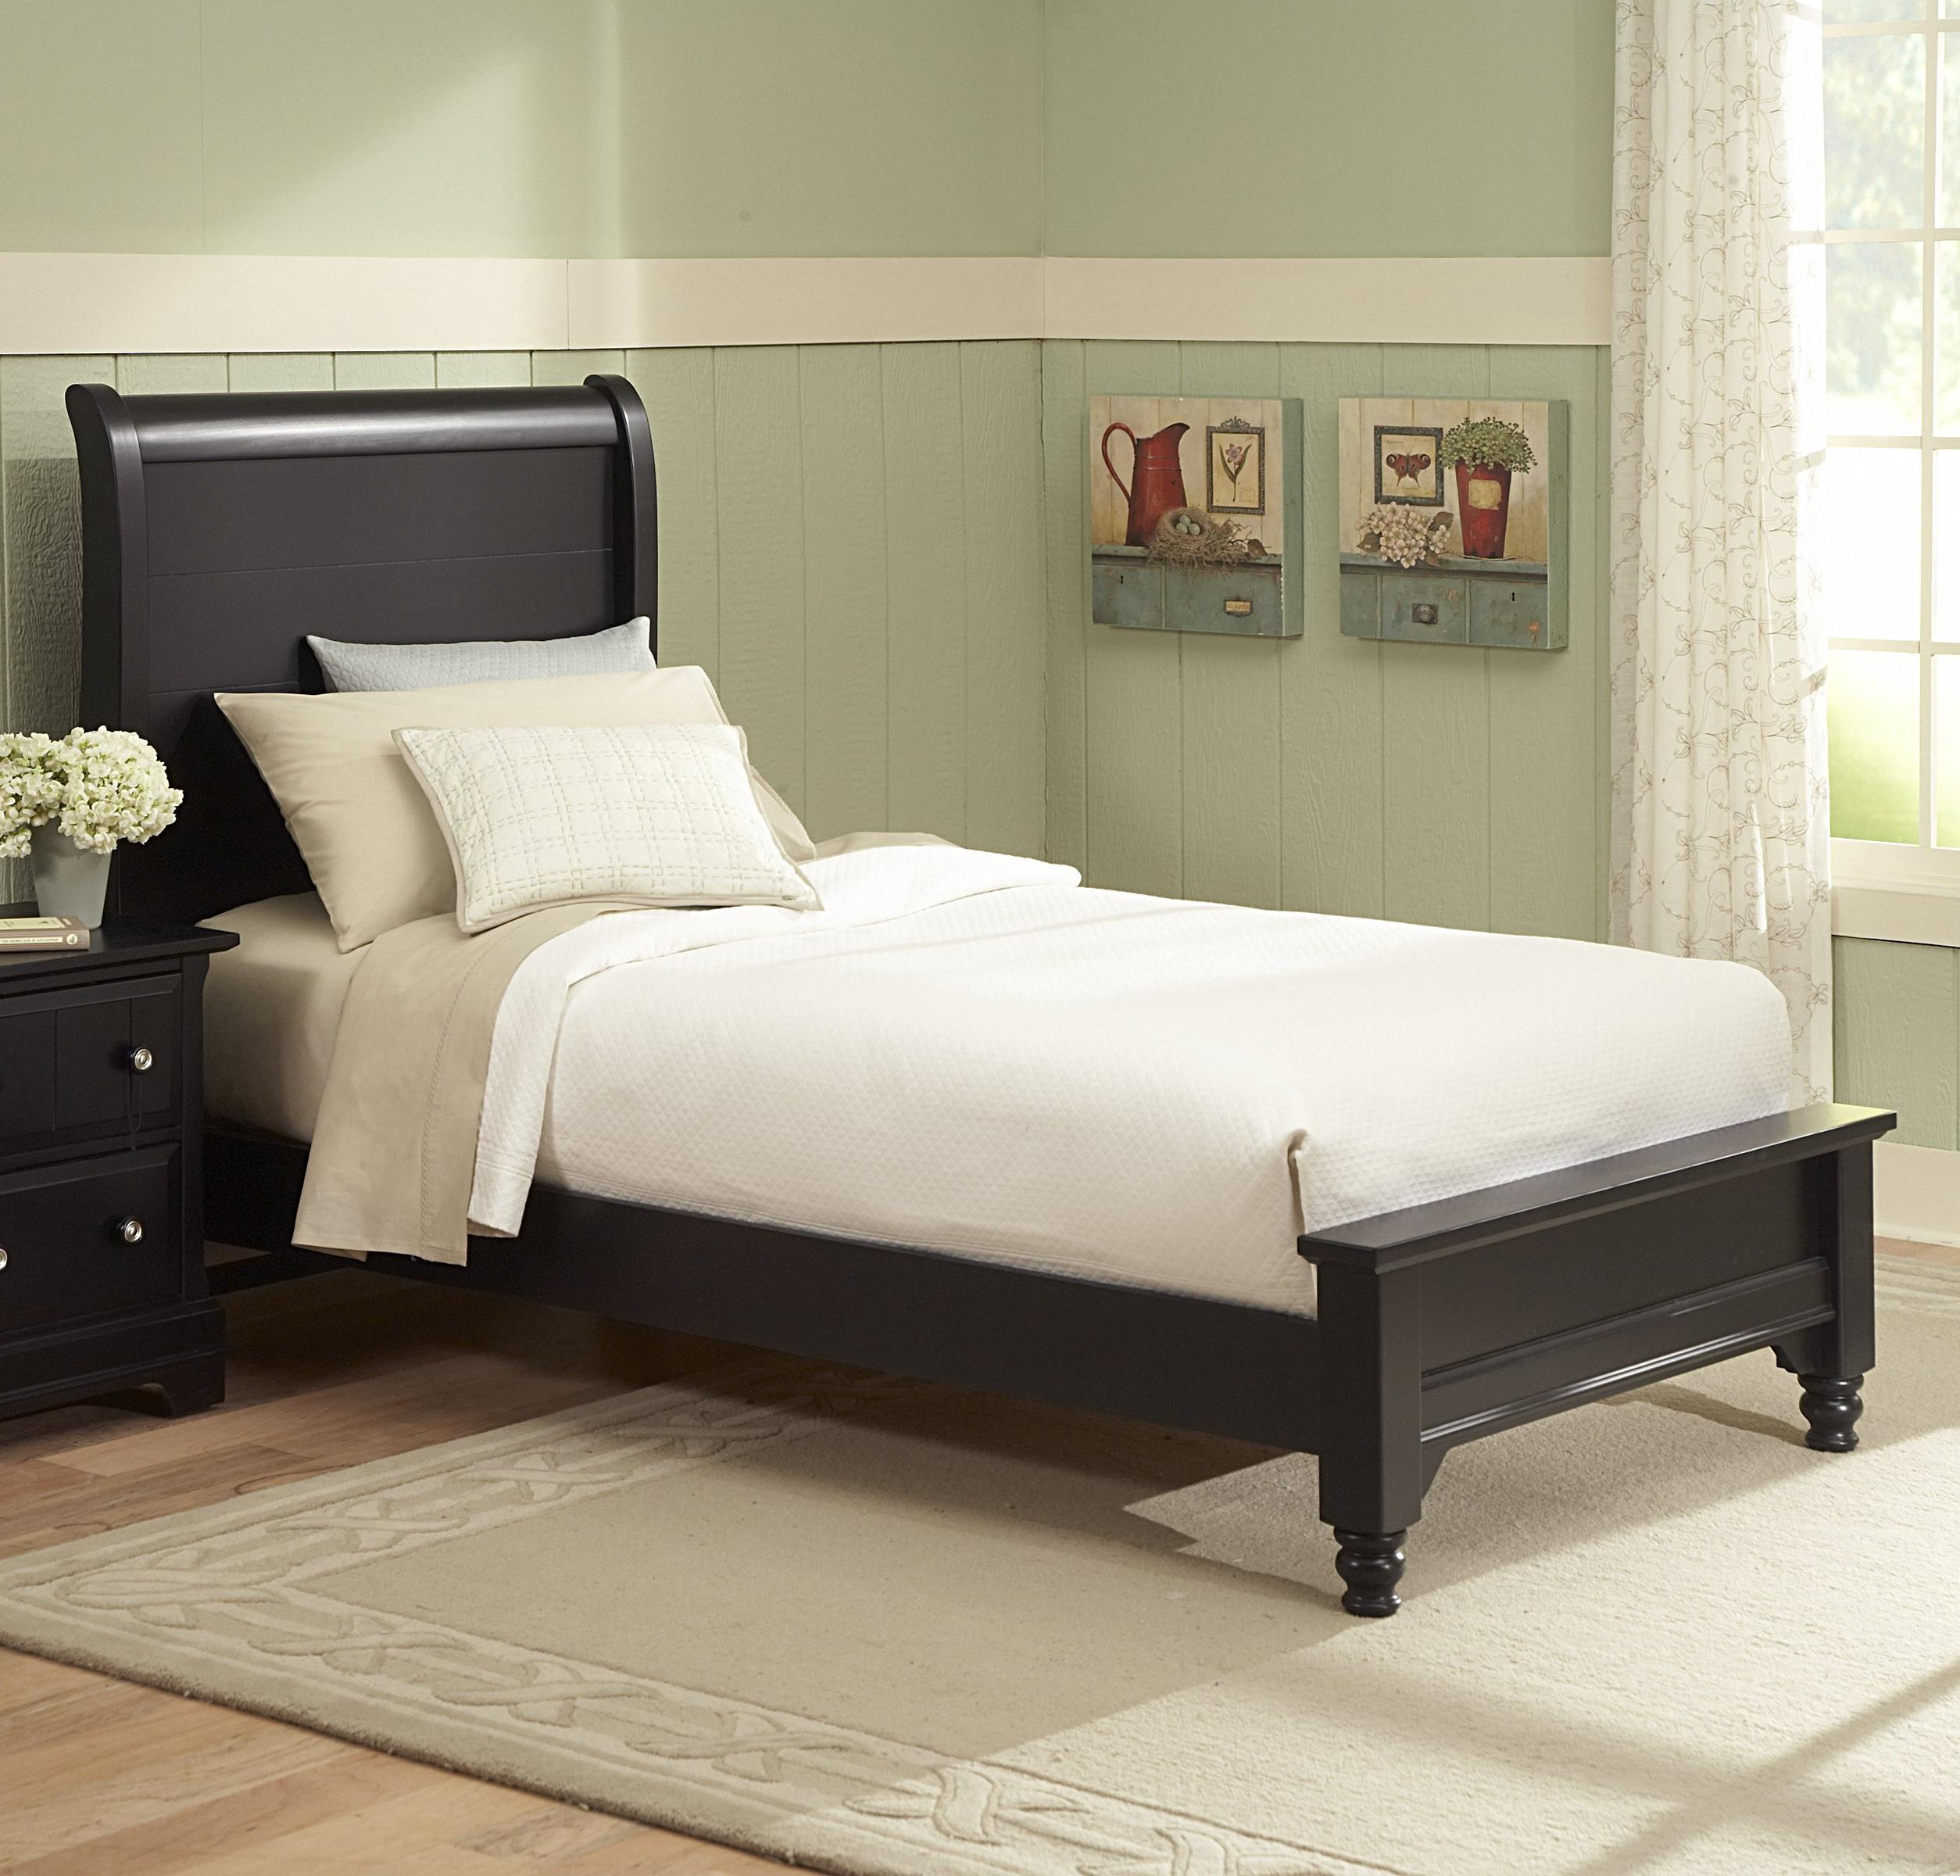 Full Sleigh Bed w/ Low Footboard